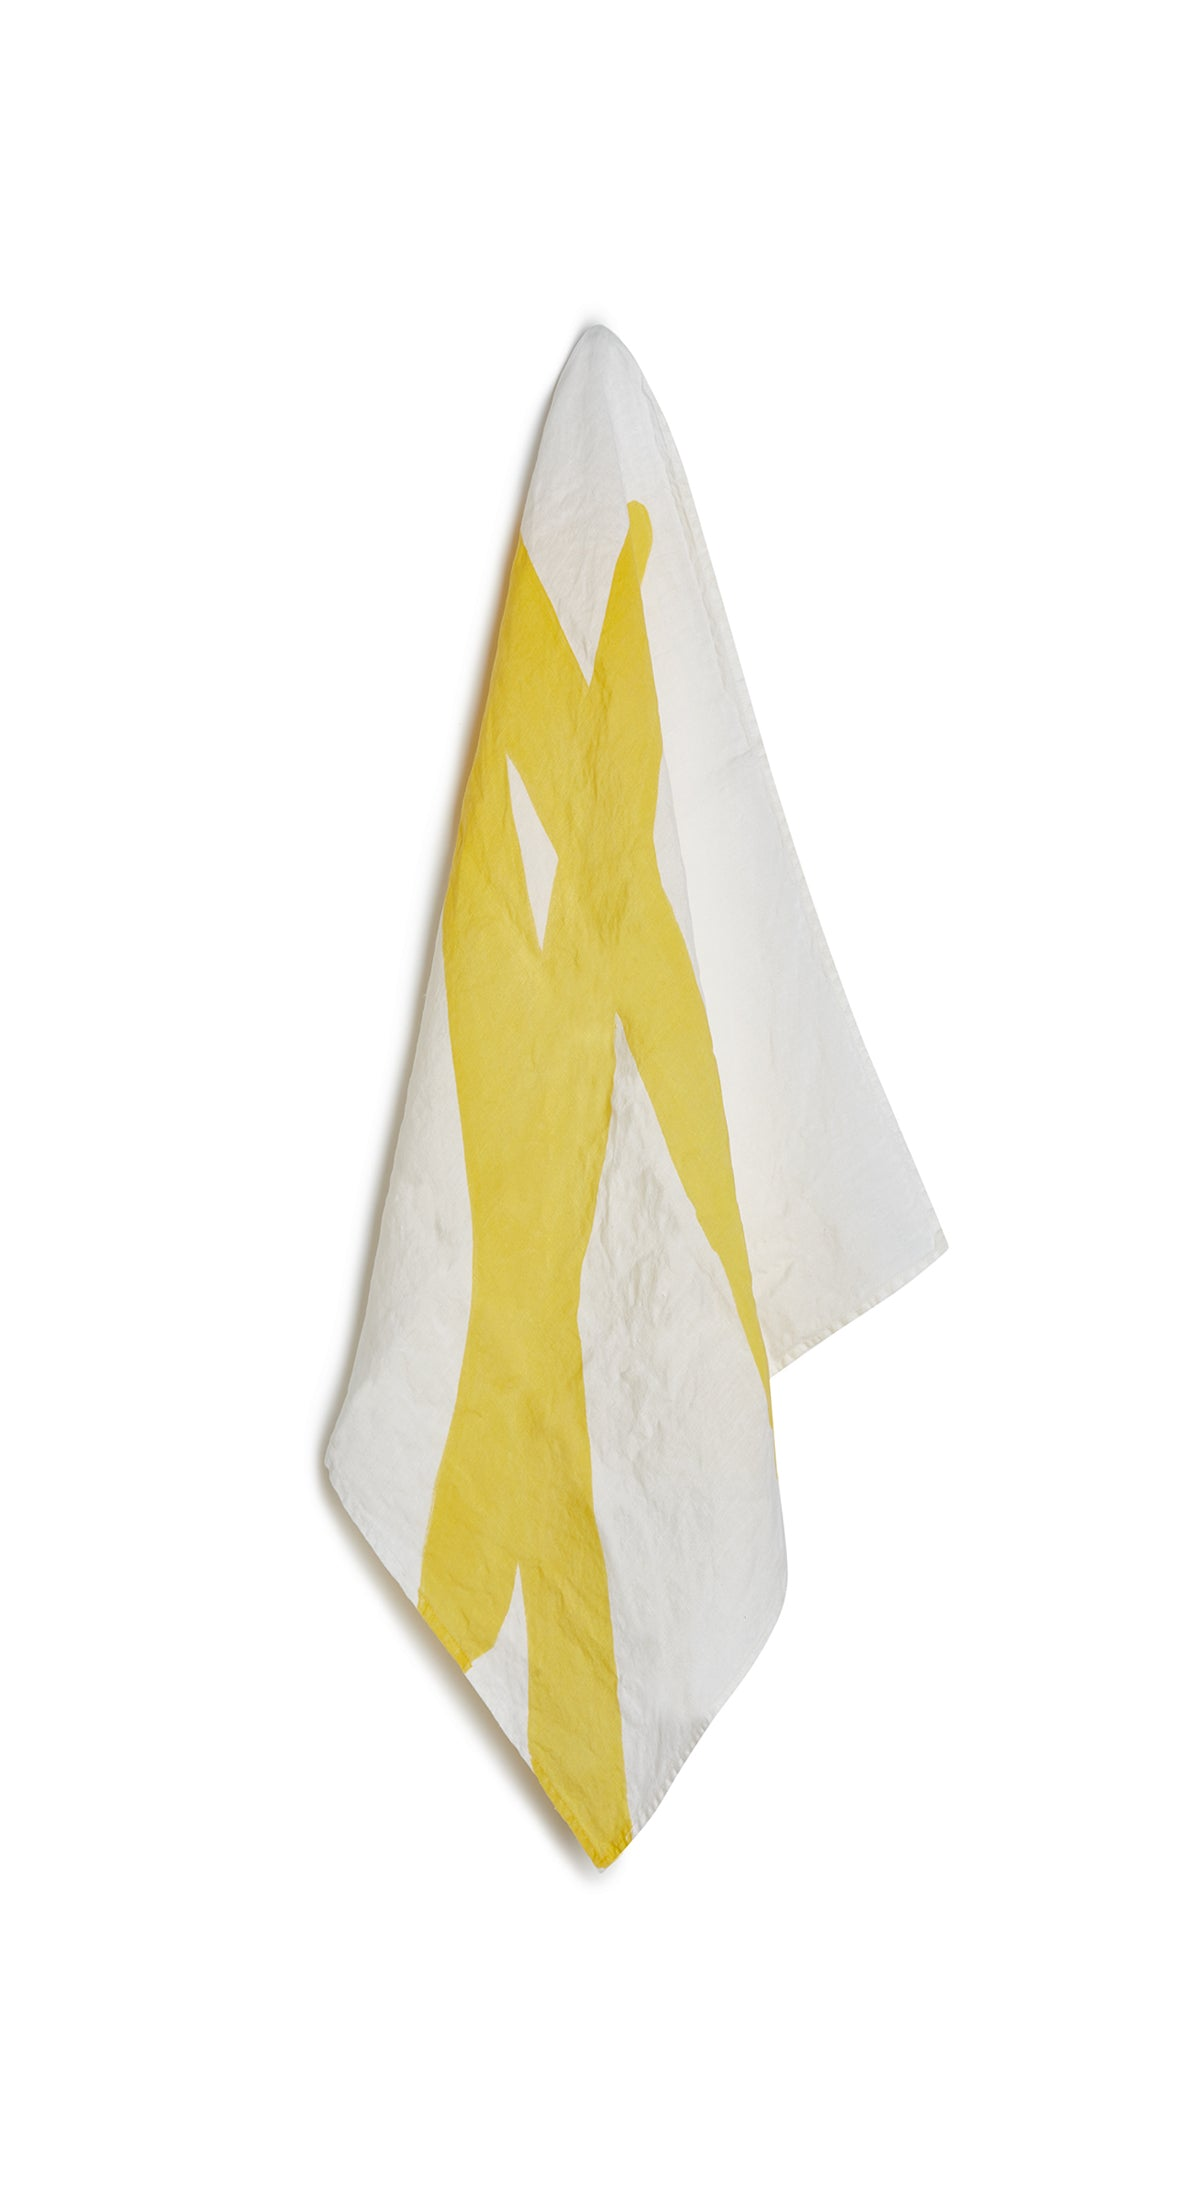 Alphabet Napkin 'A' in Lemon Yellow